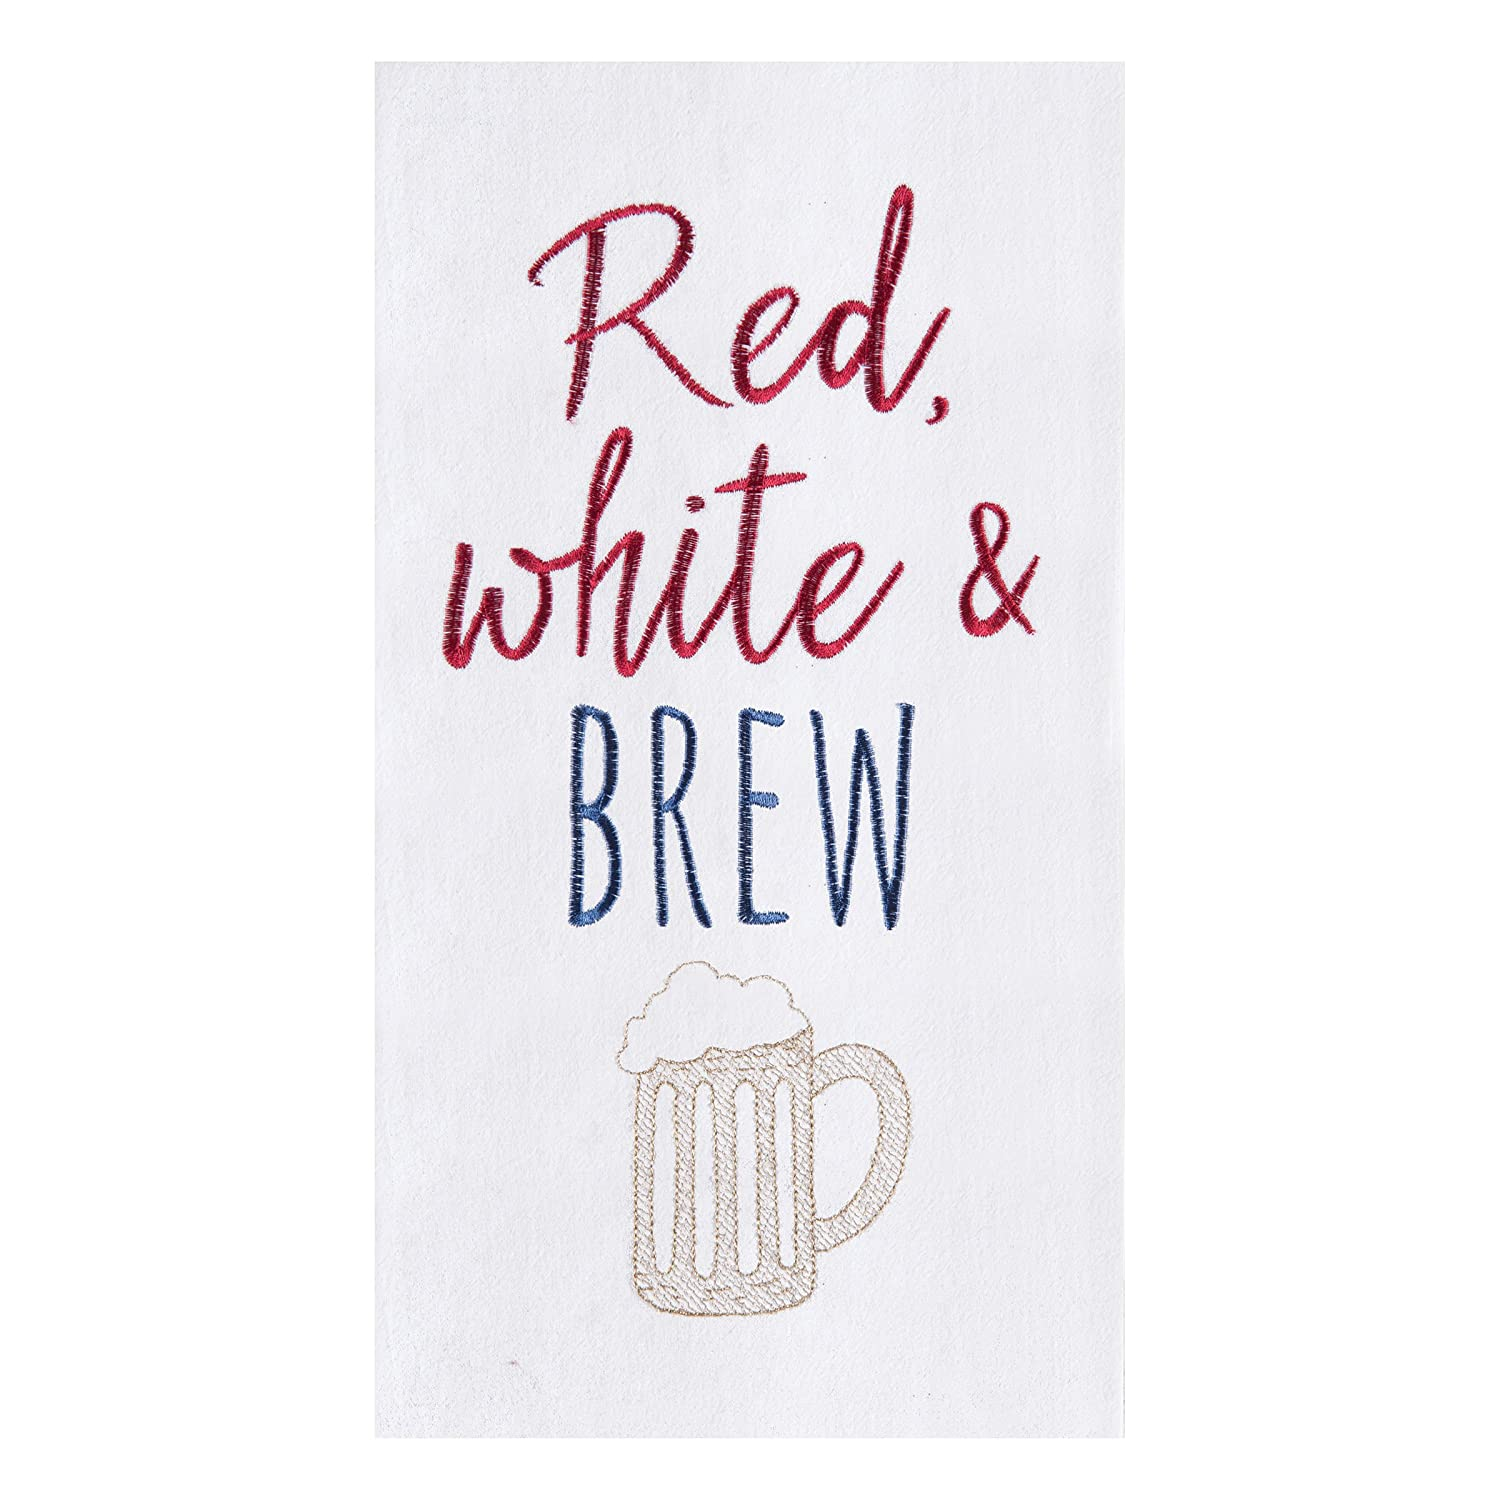 C&F Home Red, White and Brew Beer Mug Flour Sack Kitchen Patriotic American 4th of July Memorial Labor Day Towel Red, White & Brew